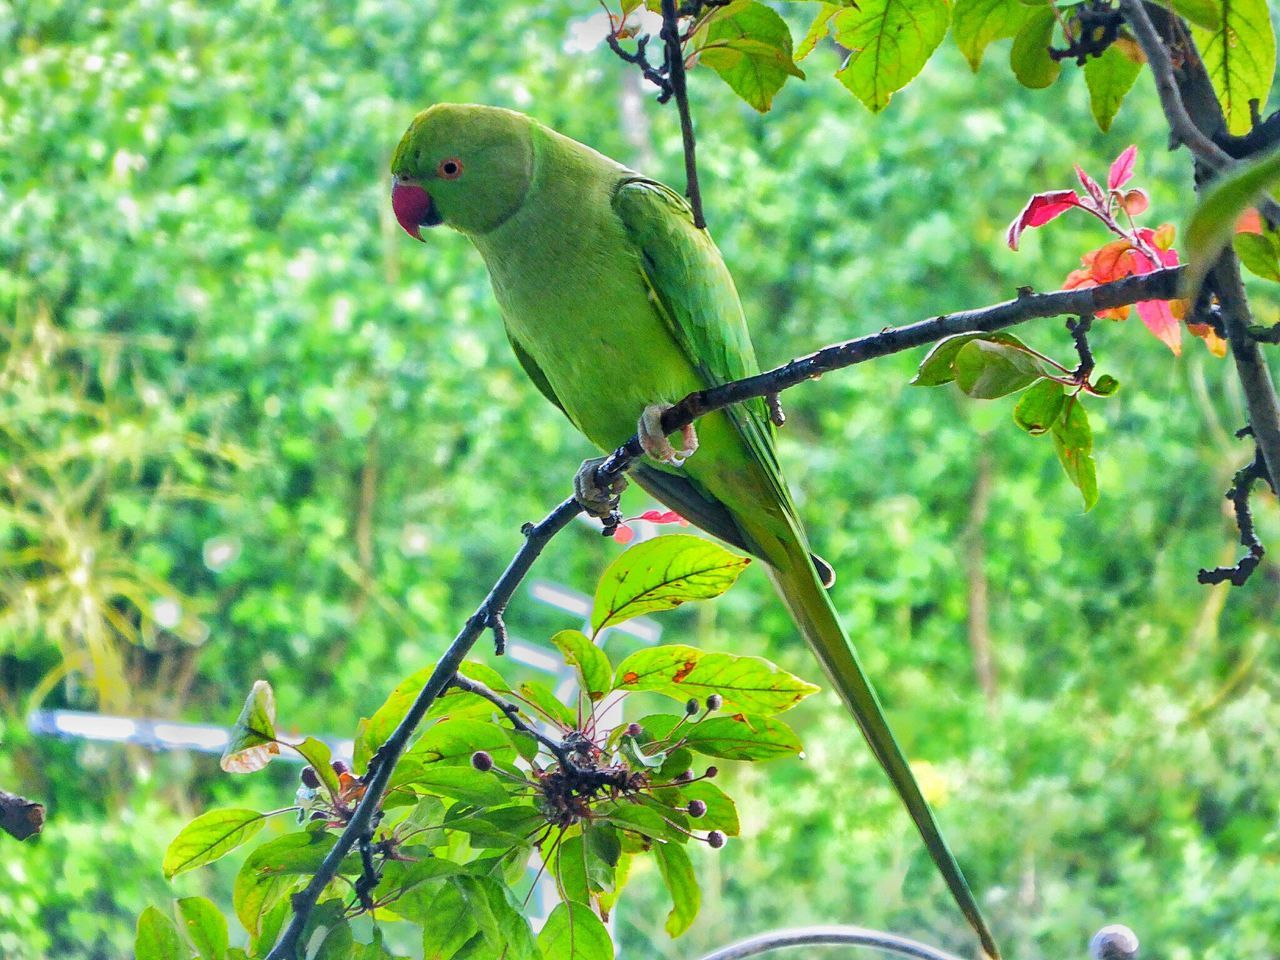 Rose Ring Parakeet Rose-ringed Parakeets Rose-ringed Parakeet Parakeet Parakeets Bird Birds Bird Photography Birds_collection Birdwatching Bird Watching Wildlife Wildlife Photography Wildlife & Nature Nature Nature_collection Nature Photography Naturelovers